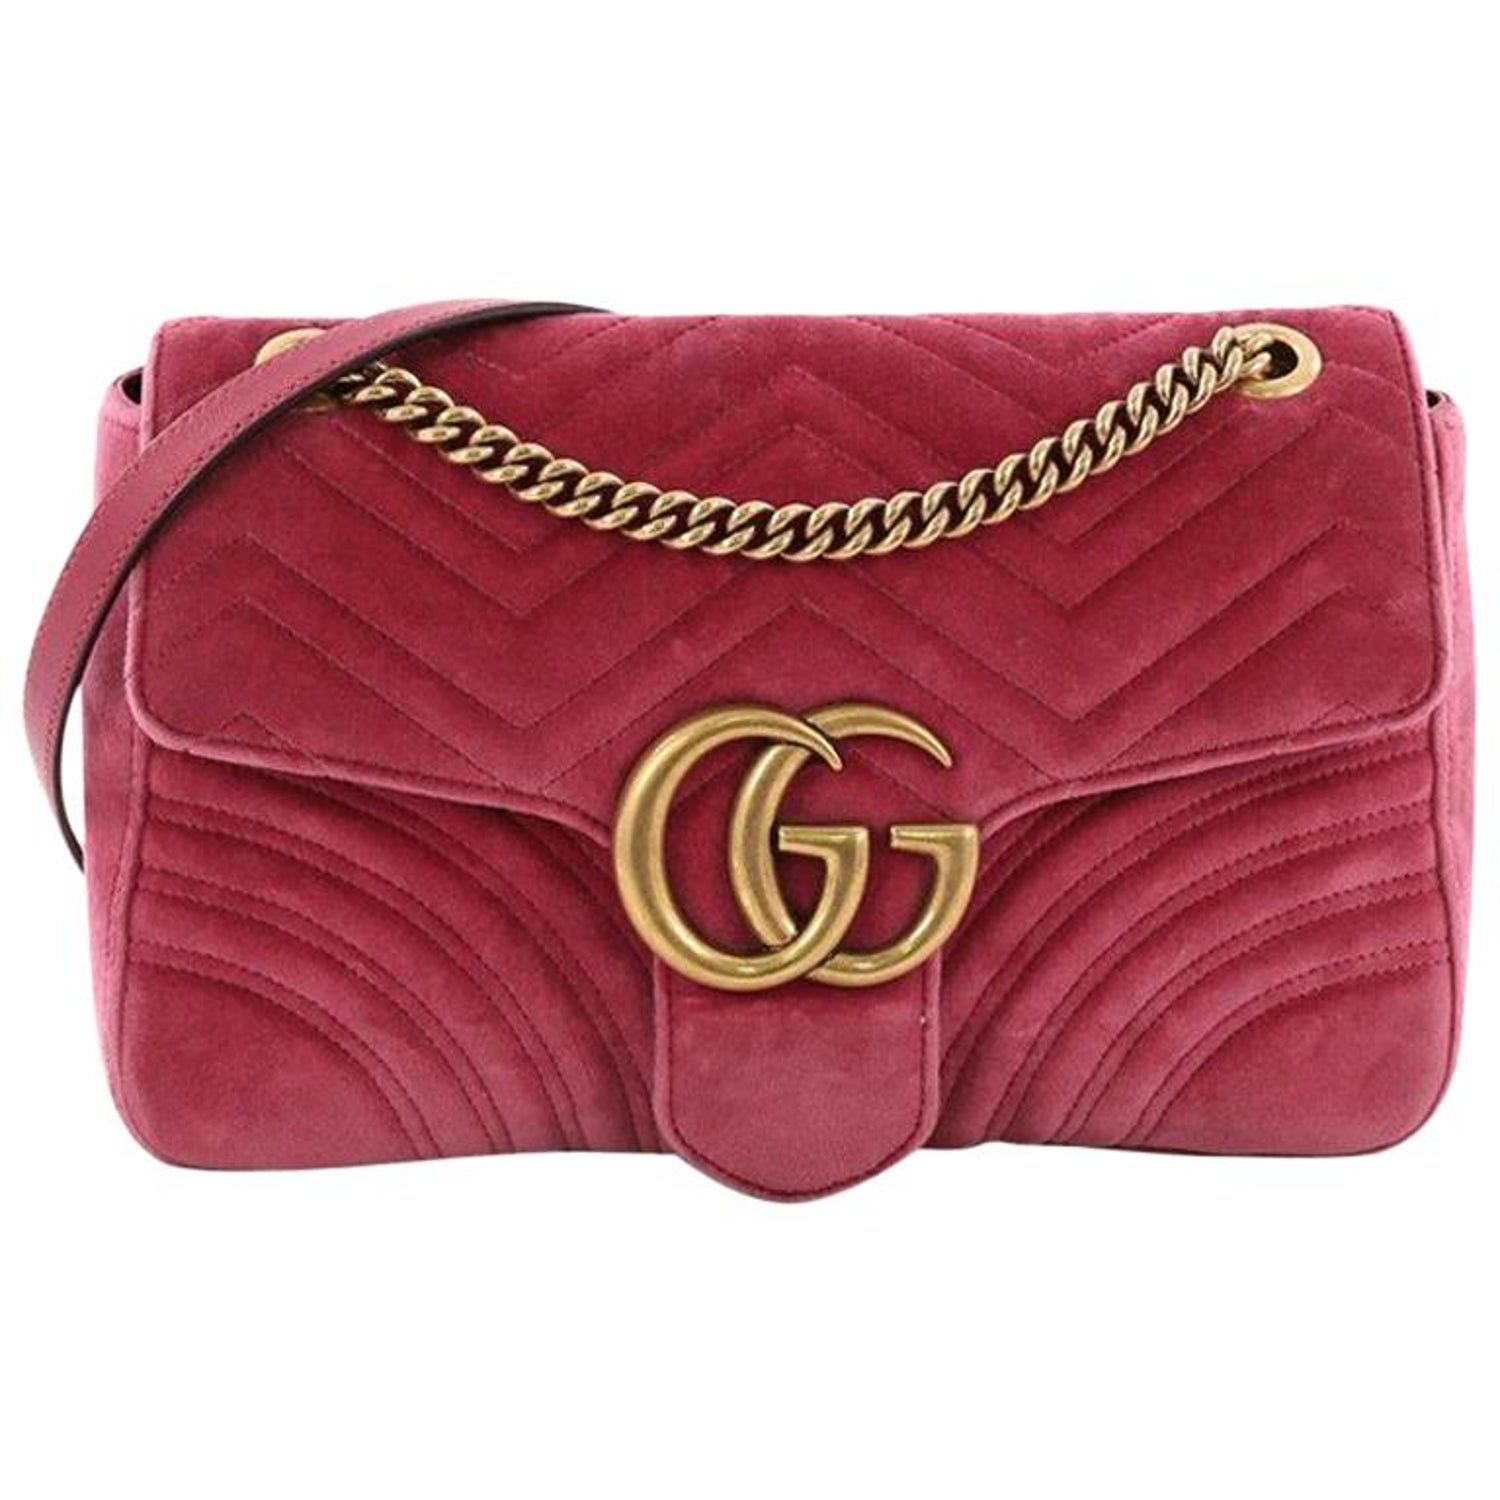 9b84d18b2 Gucci GG Marmont Flap Bag Matelasse Velvet Medium at 1stdibs